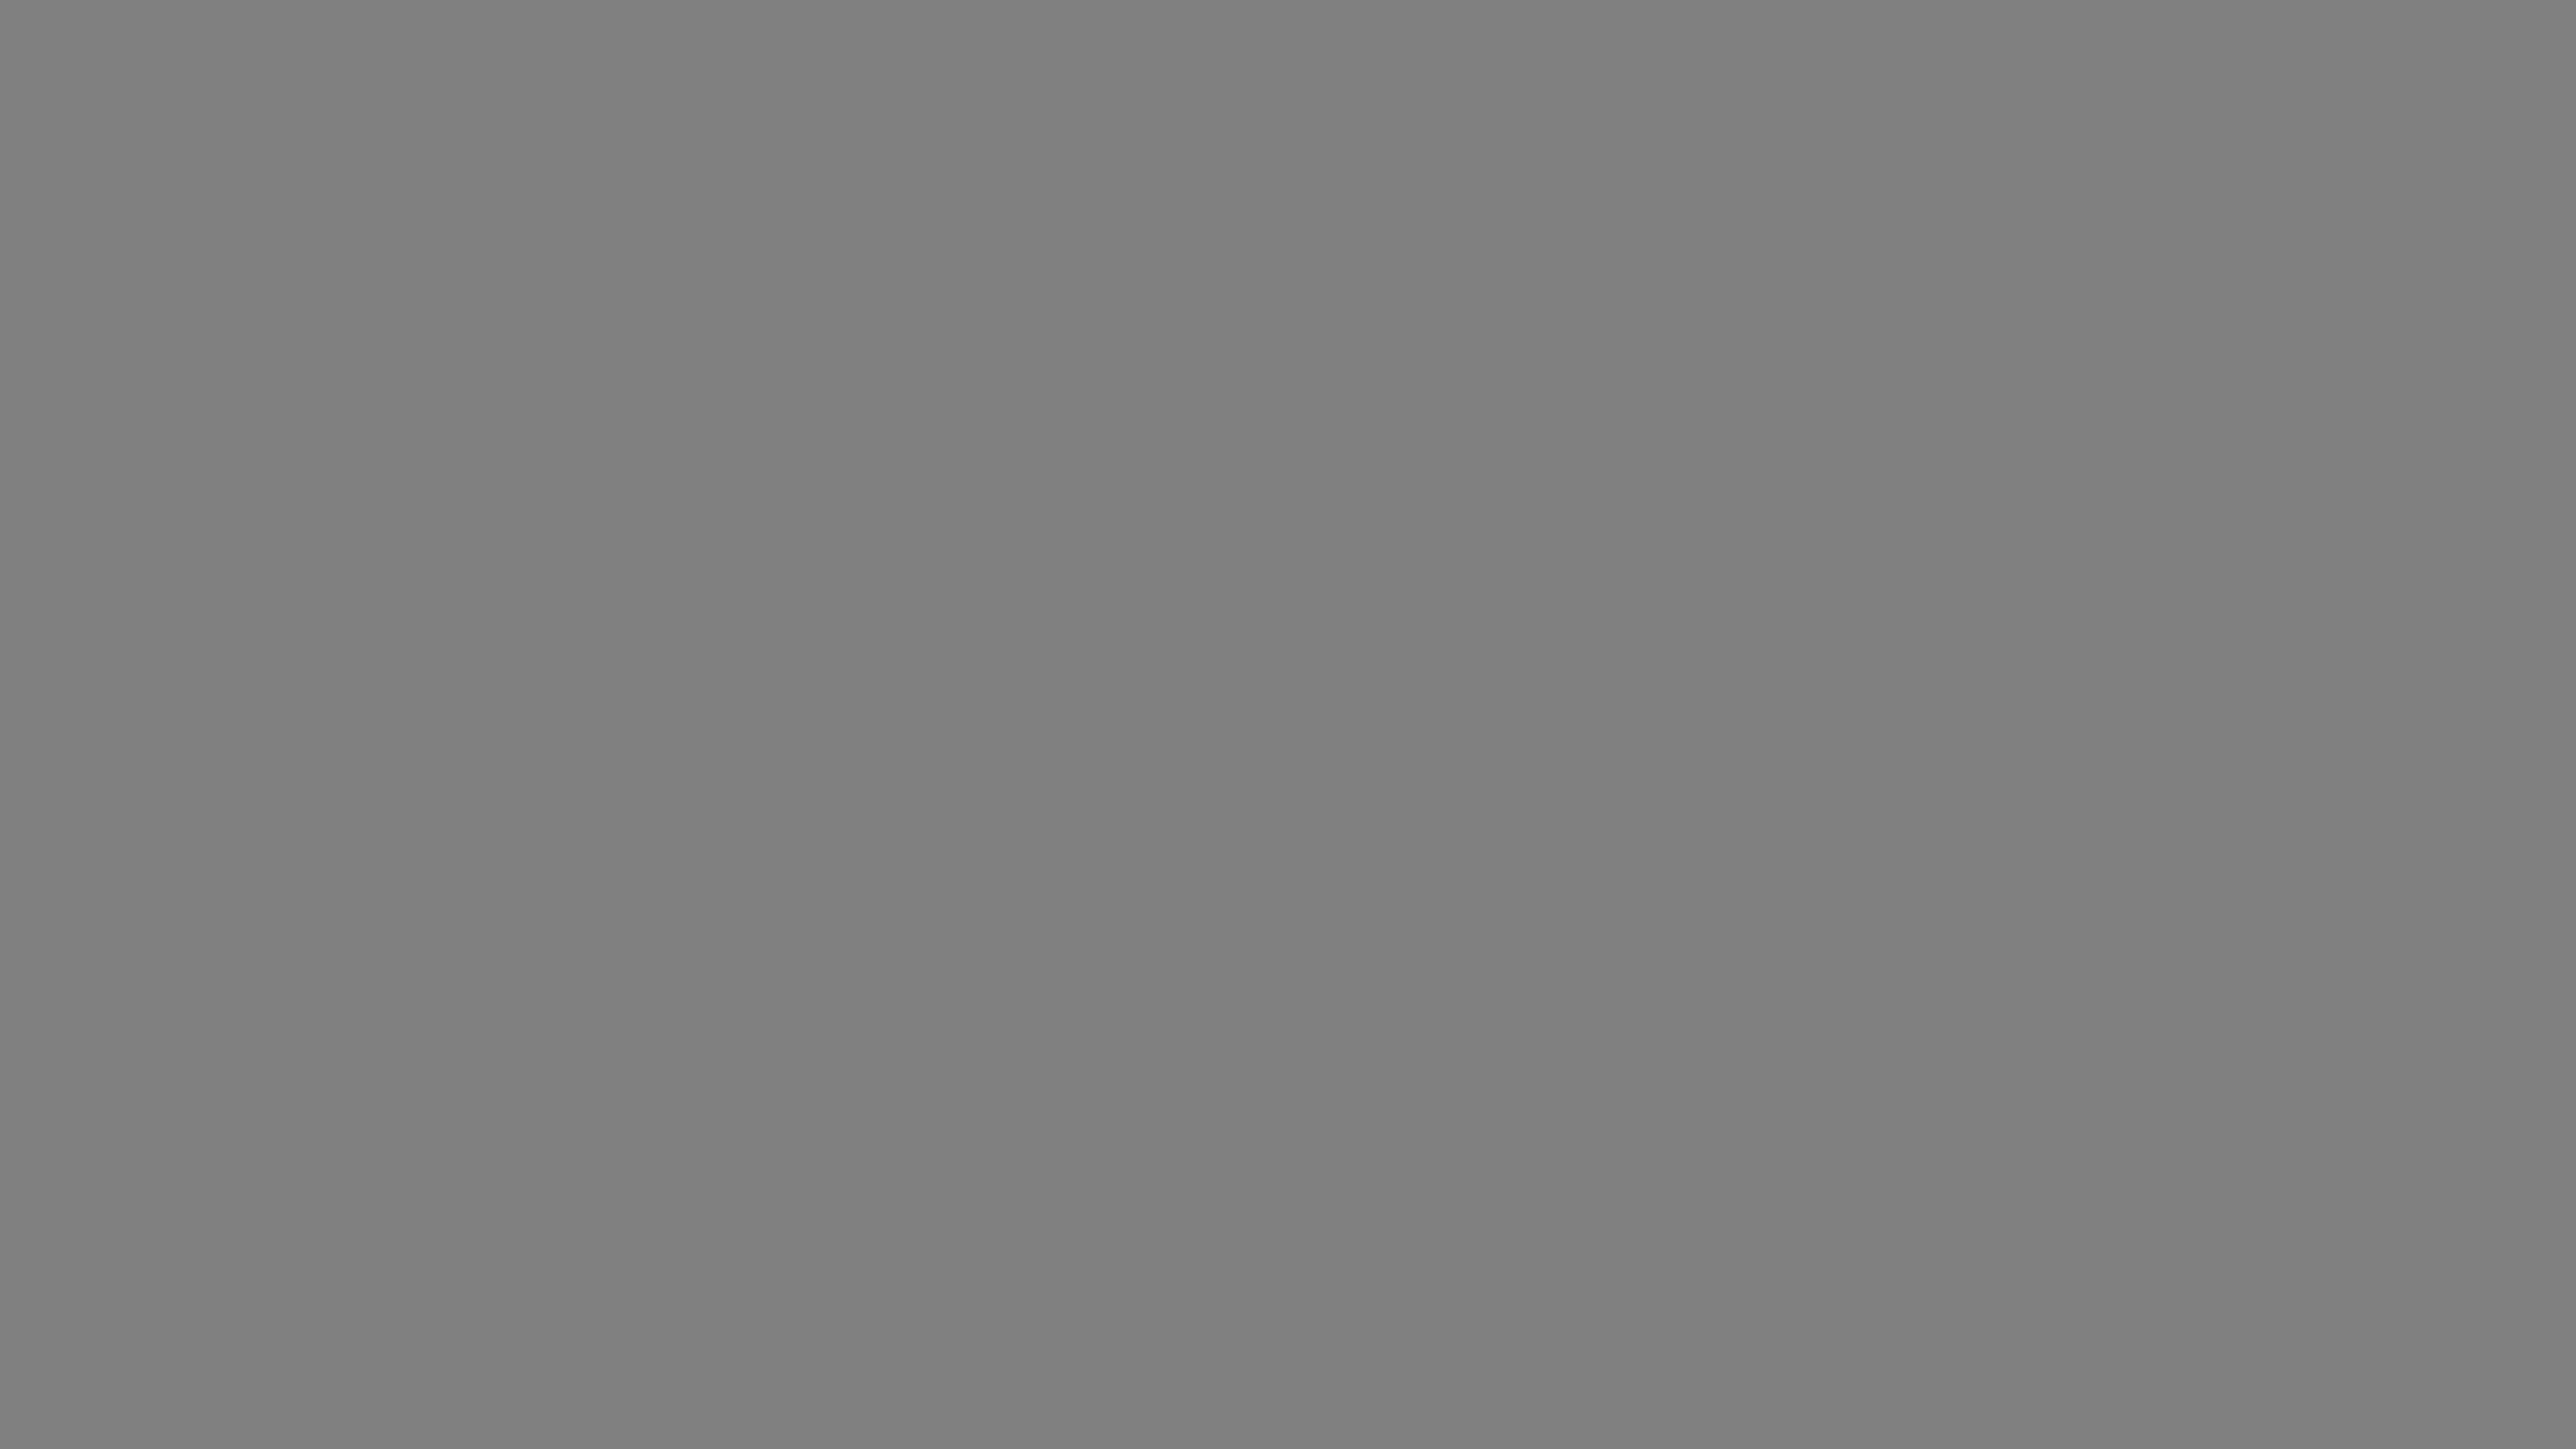 3840x2160 Gray Web Gray Solid Color Background